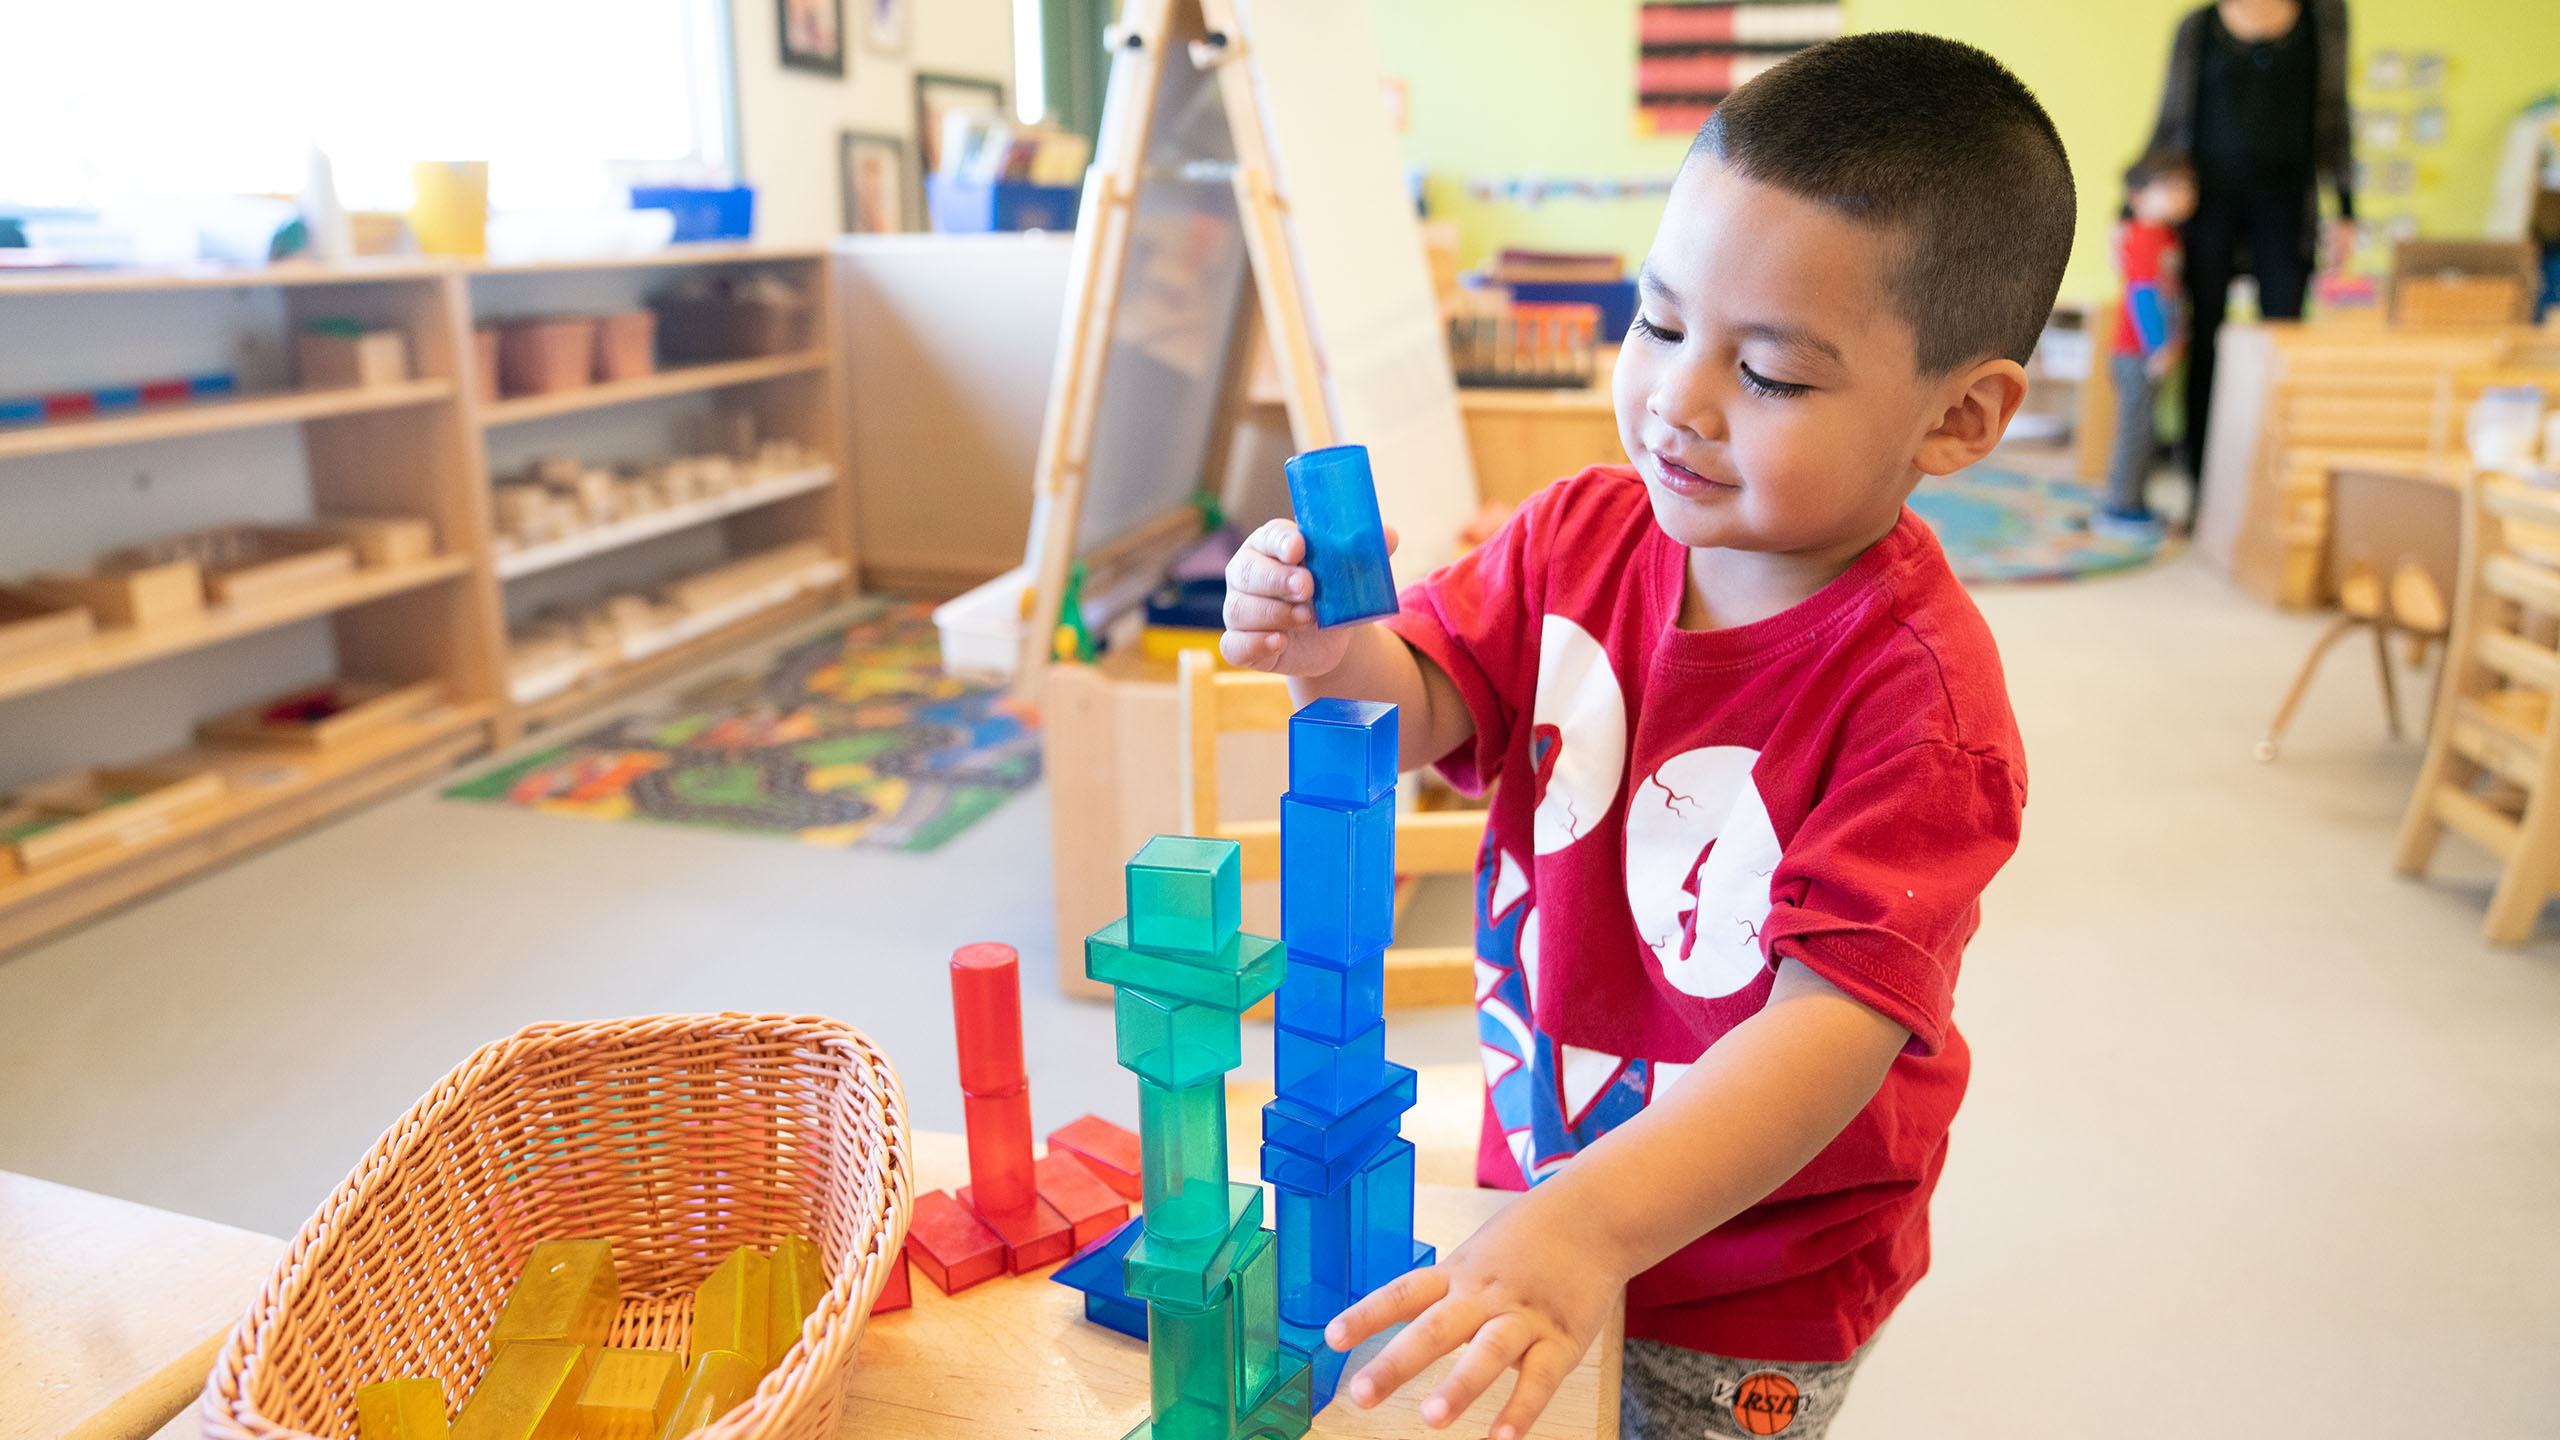 A child gleefully stacks translucent colored blocks